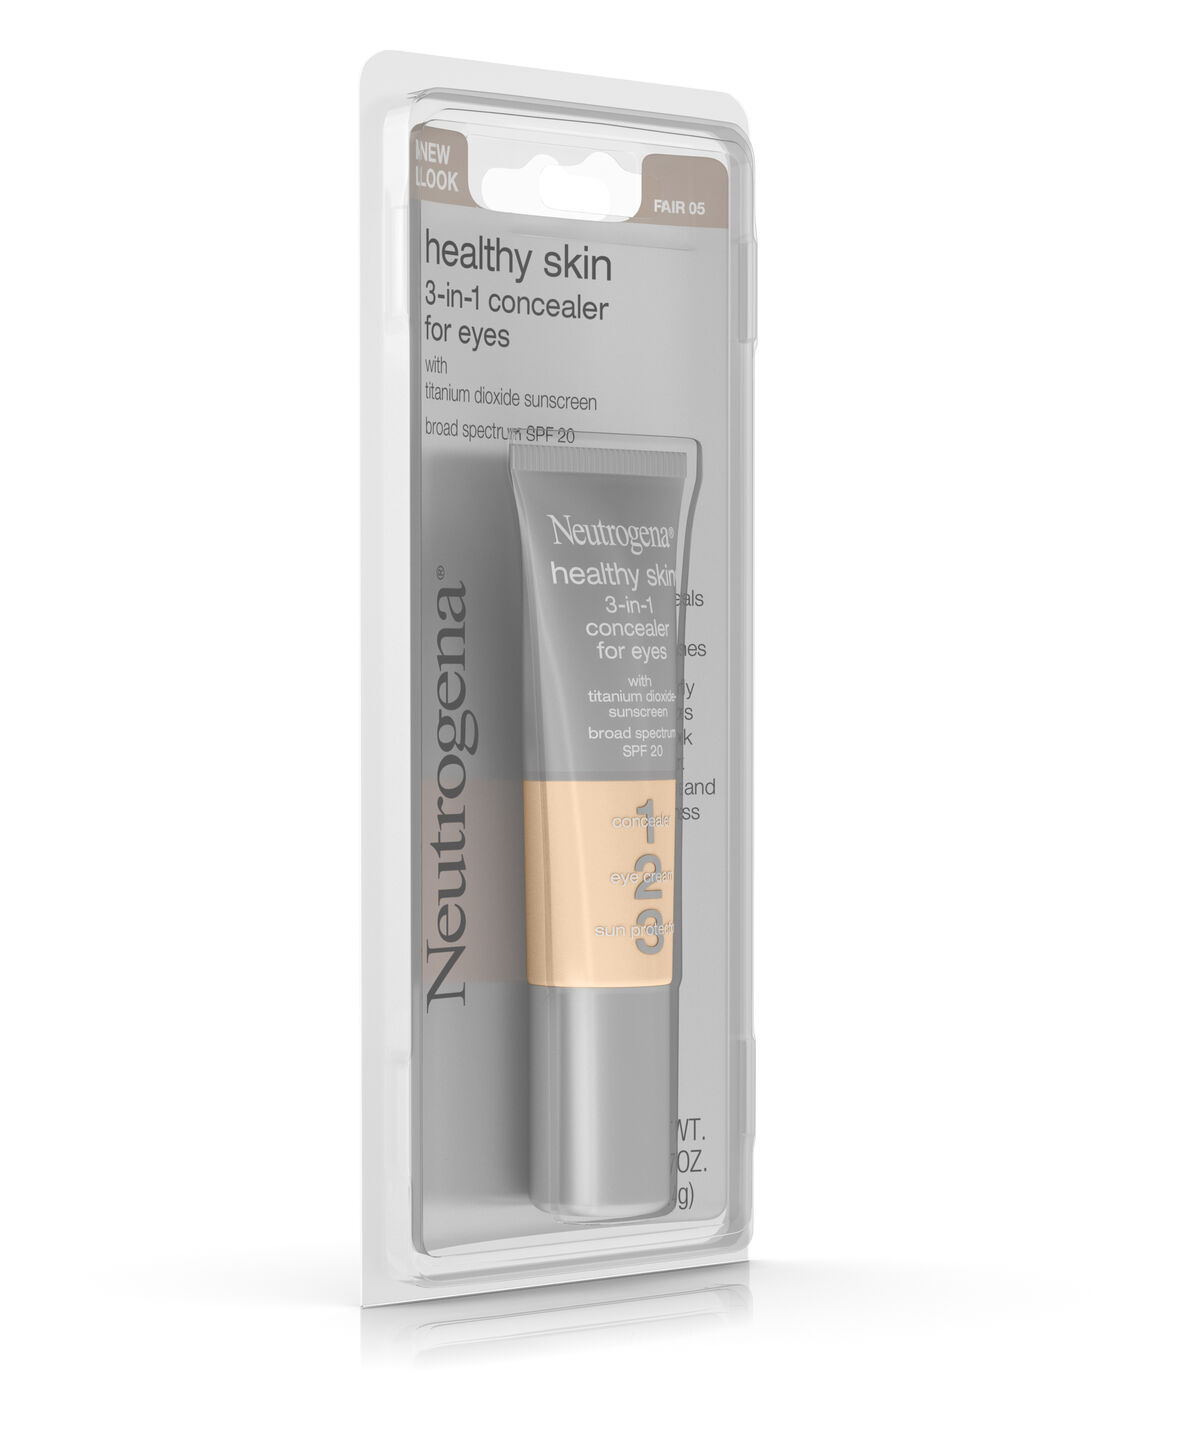 Neutrogena Healthy Skin® 3-in-1 Concealer for Eyes Broad Spectrum ...